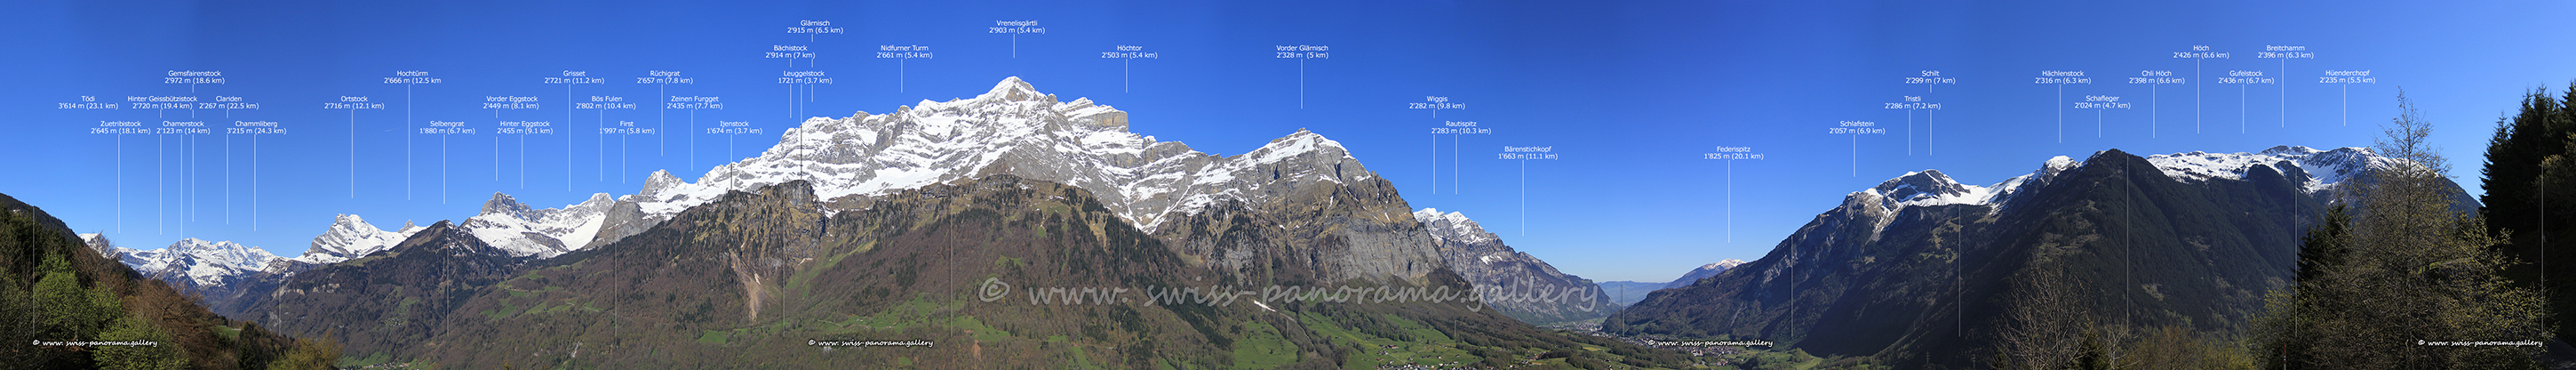 Switzerland panorama Schwander Turm